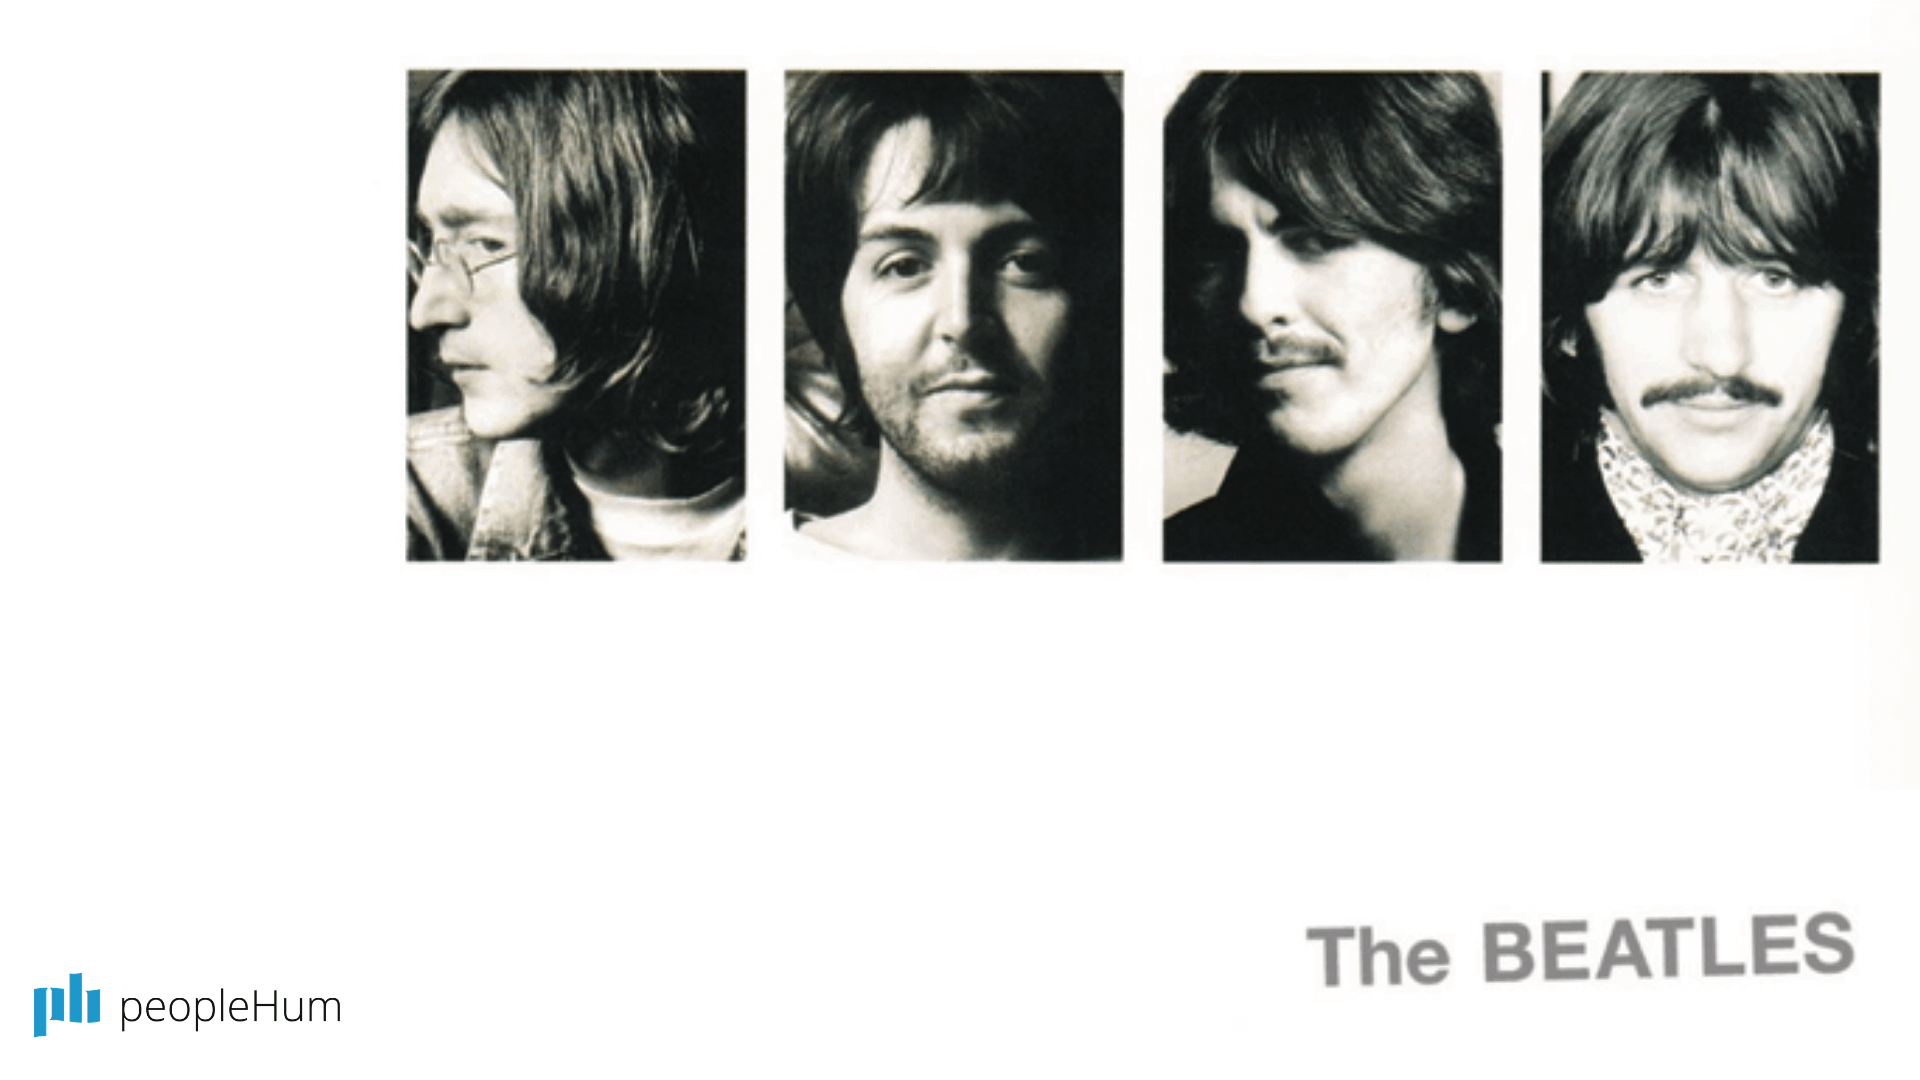 Here's why I love The Beatles' 'White Album' (Hint : it's about their preparation)